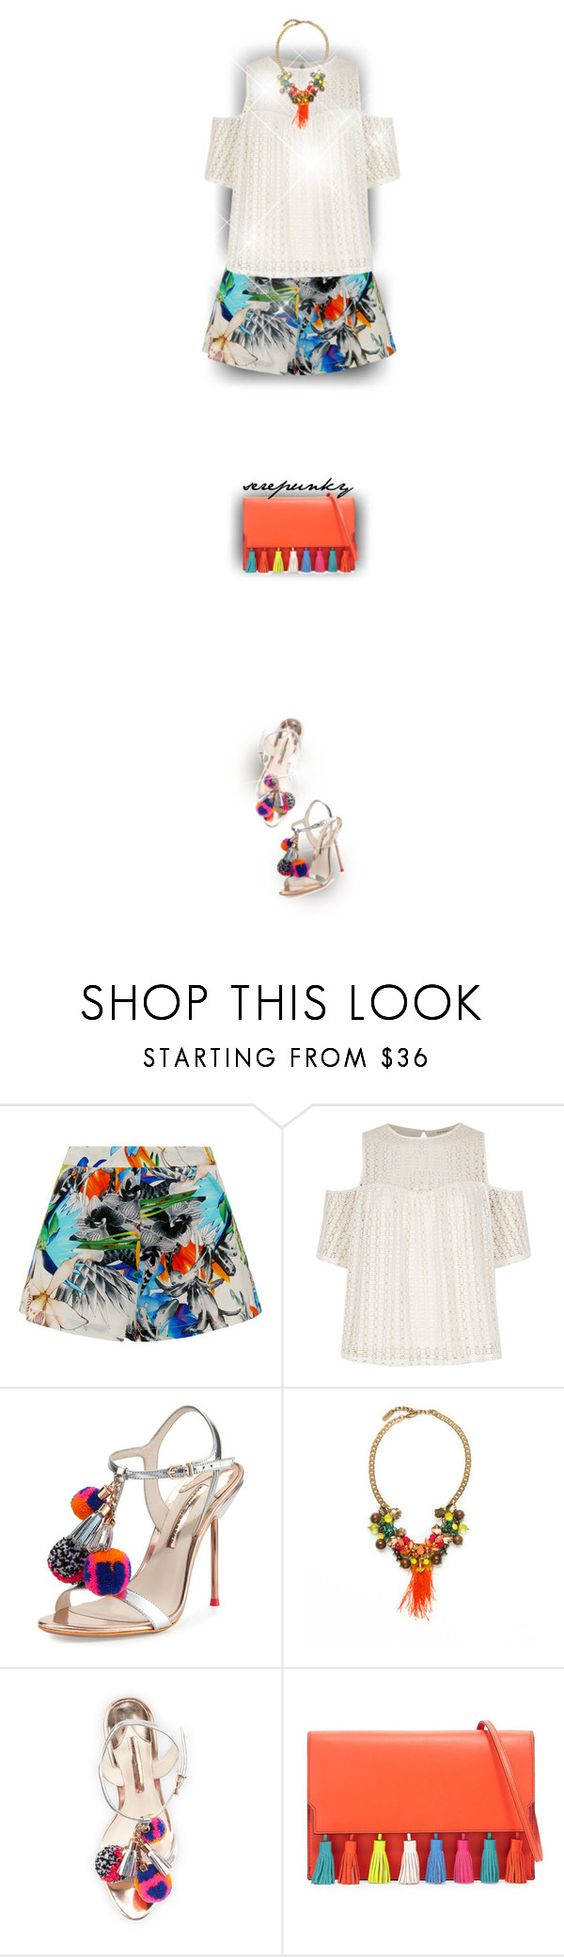 """Cold Shoulder Tops"" by serepunky ❤ liked on Polyvore featuring Suboo, River Island, Sophia Webster, Radà, Rebecca Minkoff, shorts, summerfashion, tropicalprints, pompom and coldshouldertop"